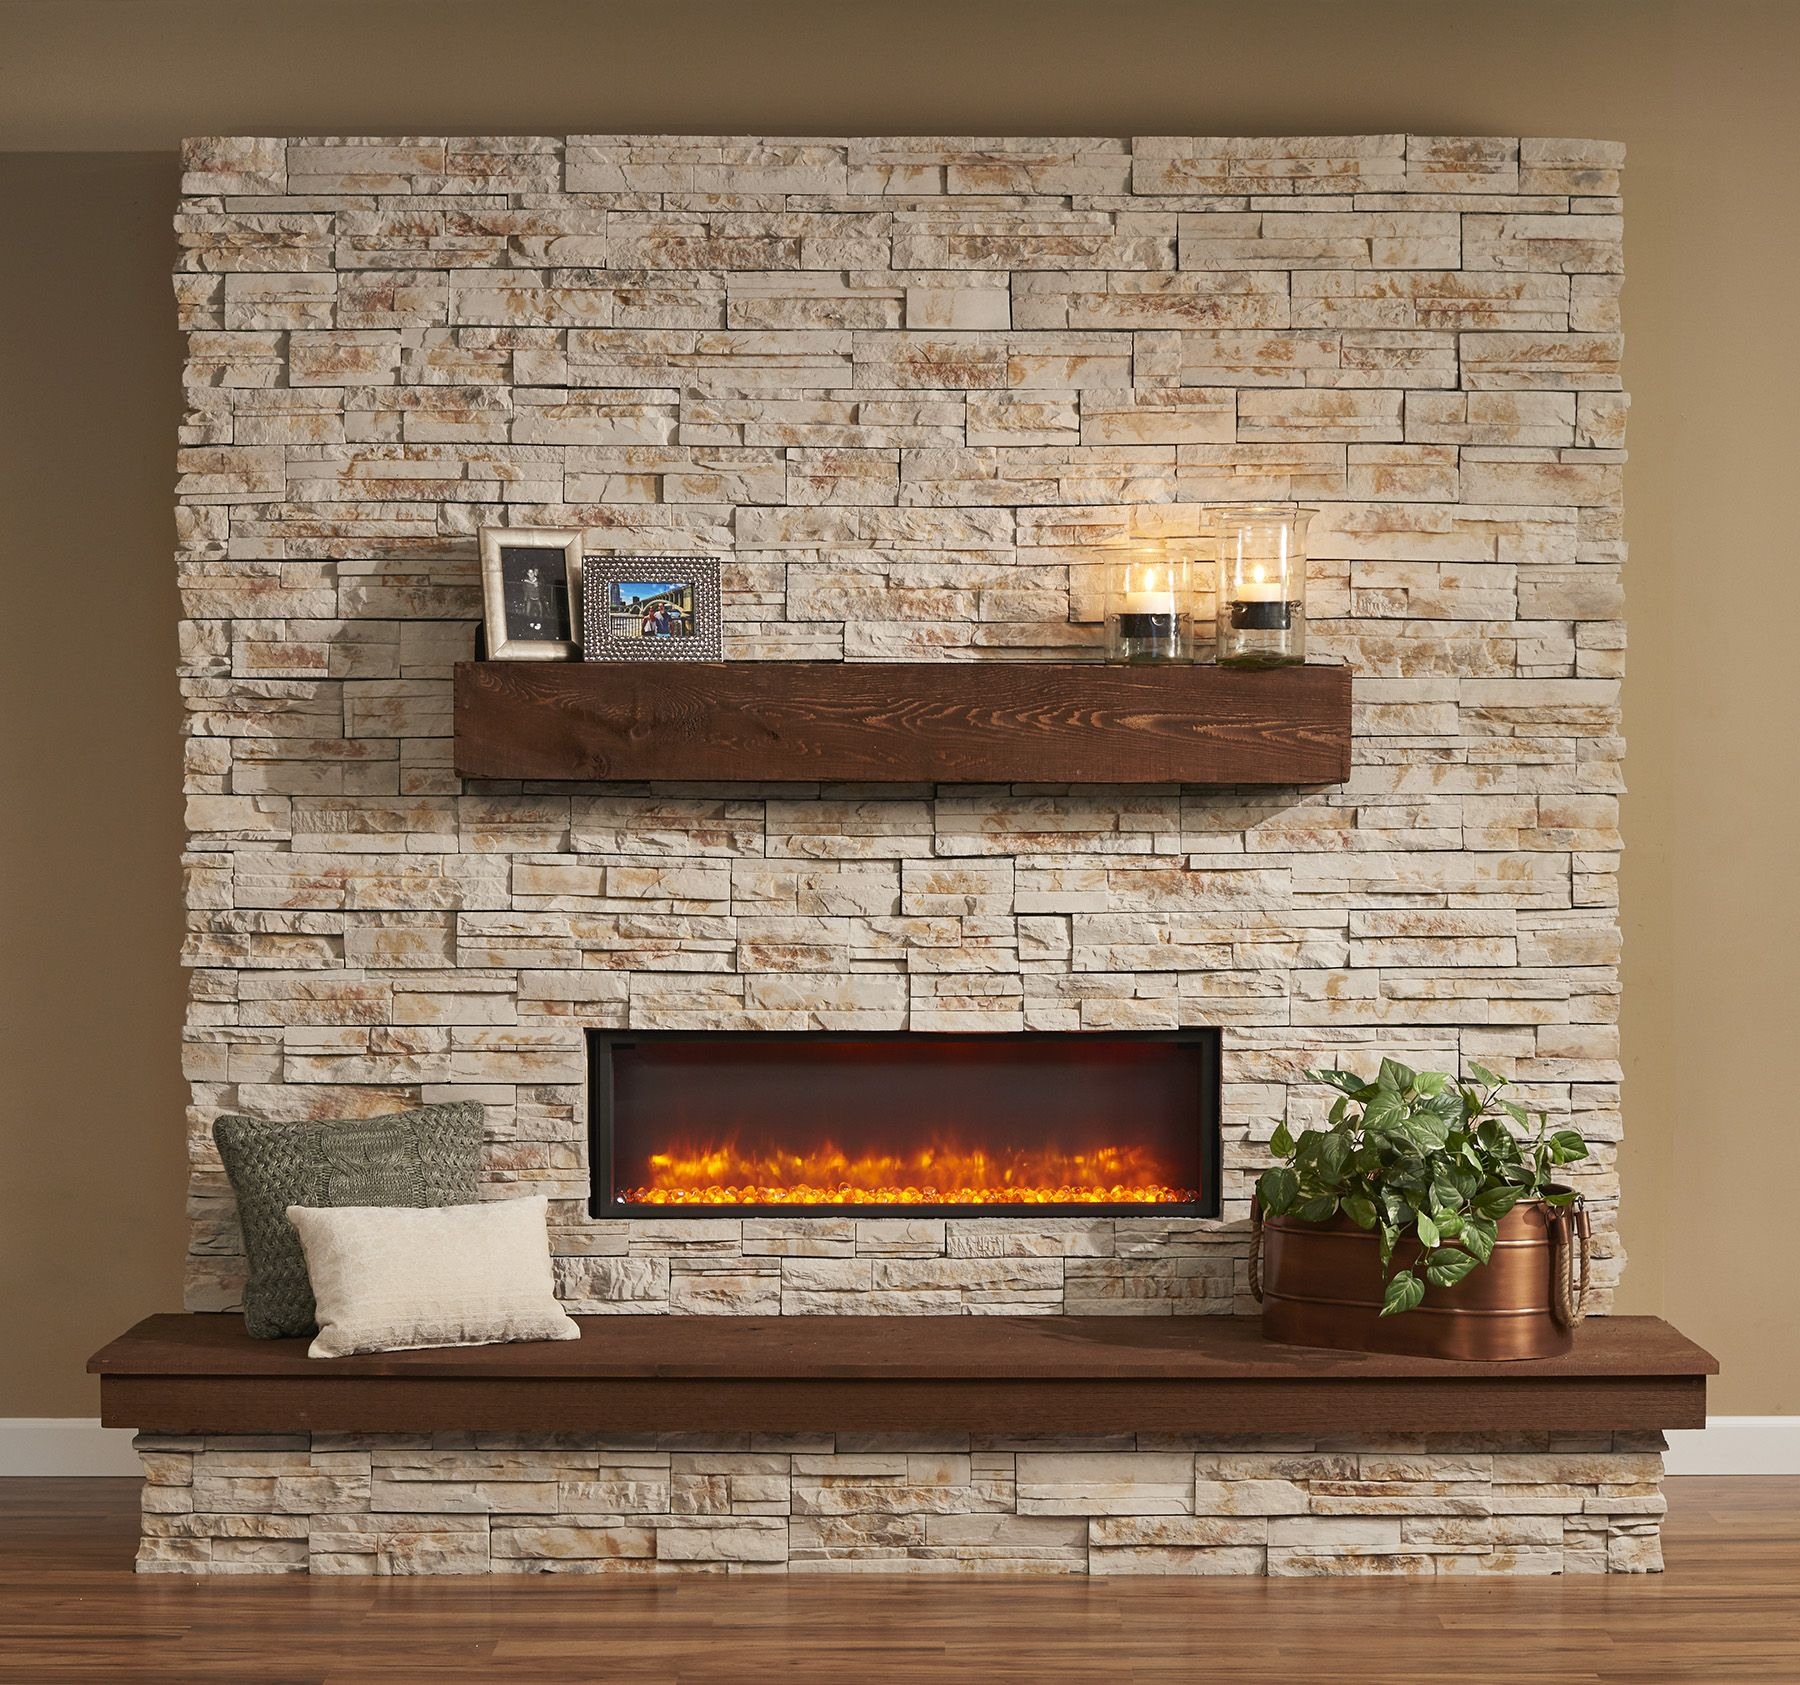 dp plug classicflame fireplace home kitchen insert infrared safer amazon led with quartz com